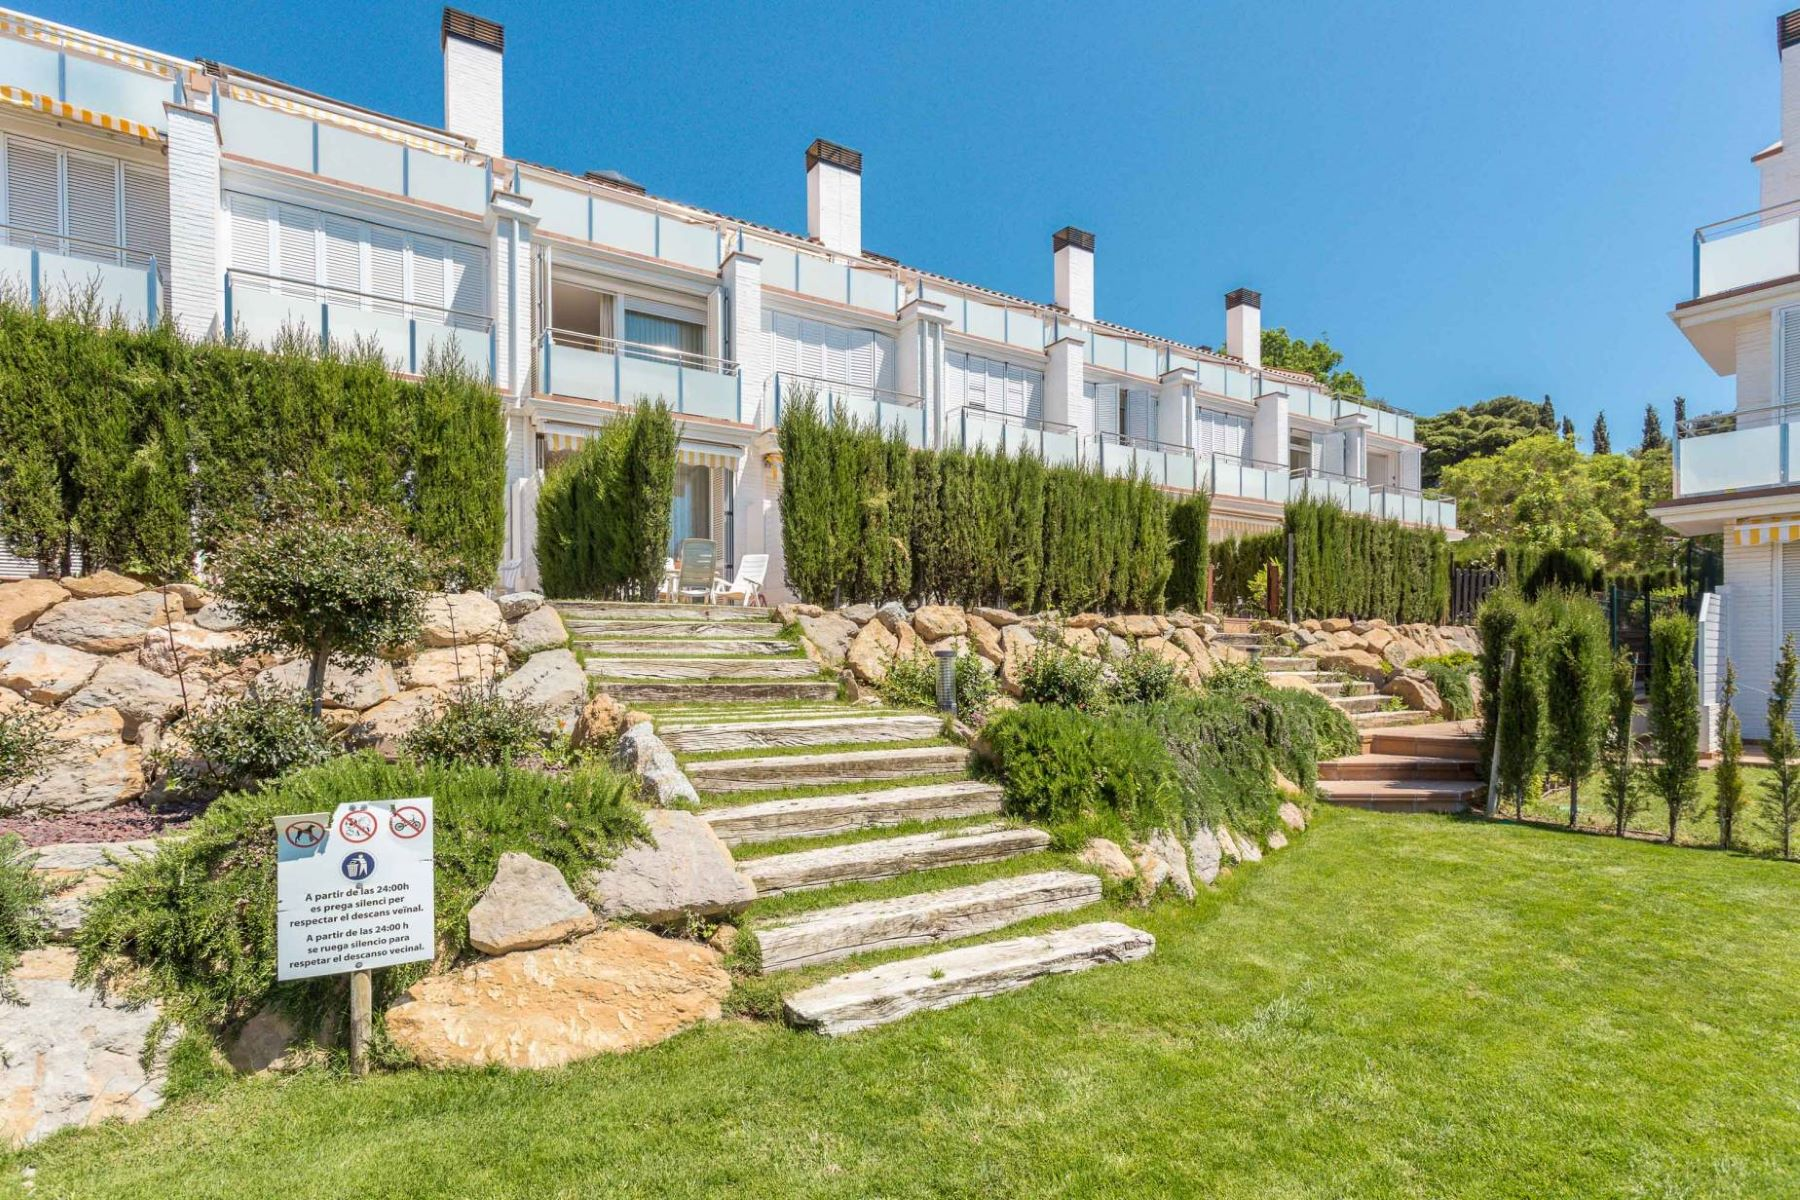 Single Family Home for Sale at Townhouse with sea views in S'Agaró S'Agaro, Costa Brava, 17248 Spain